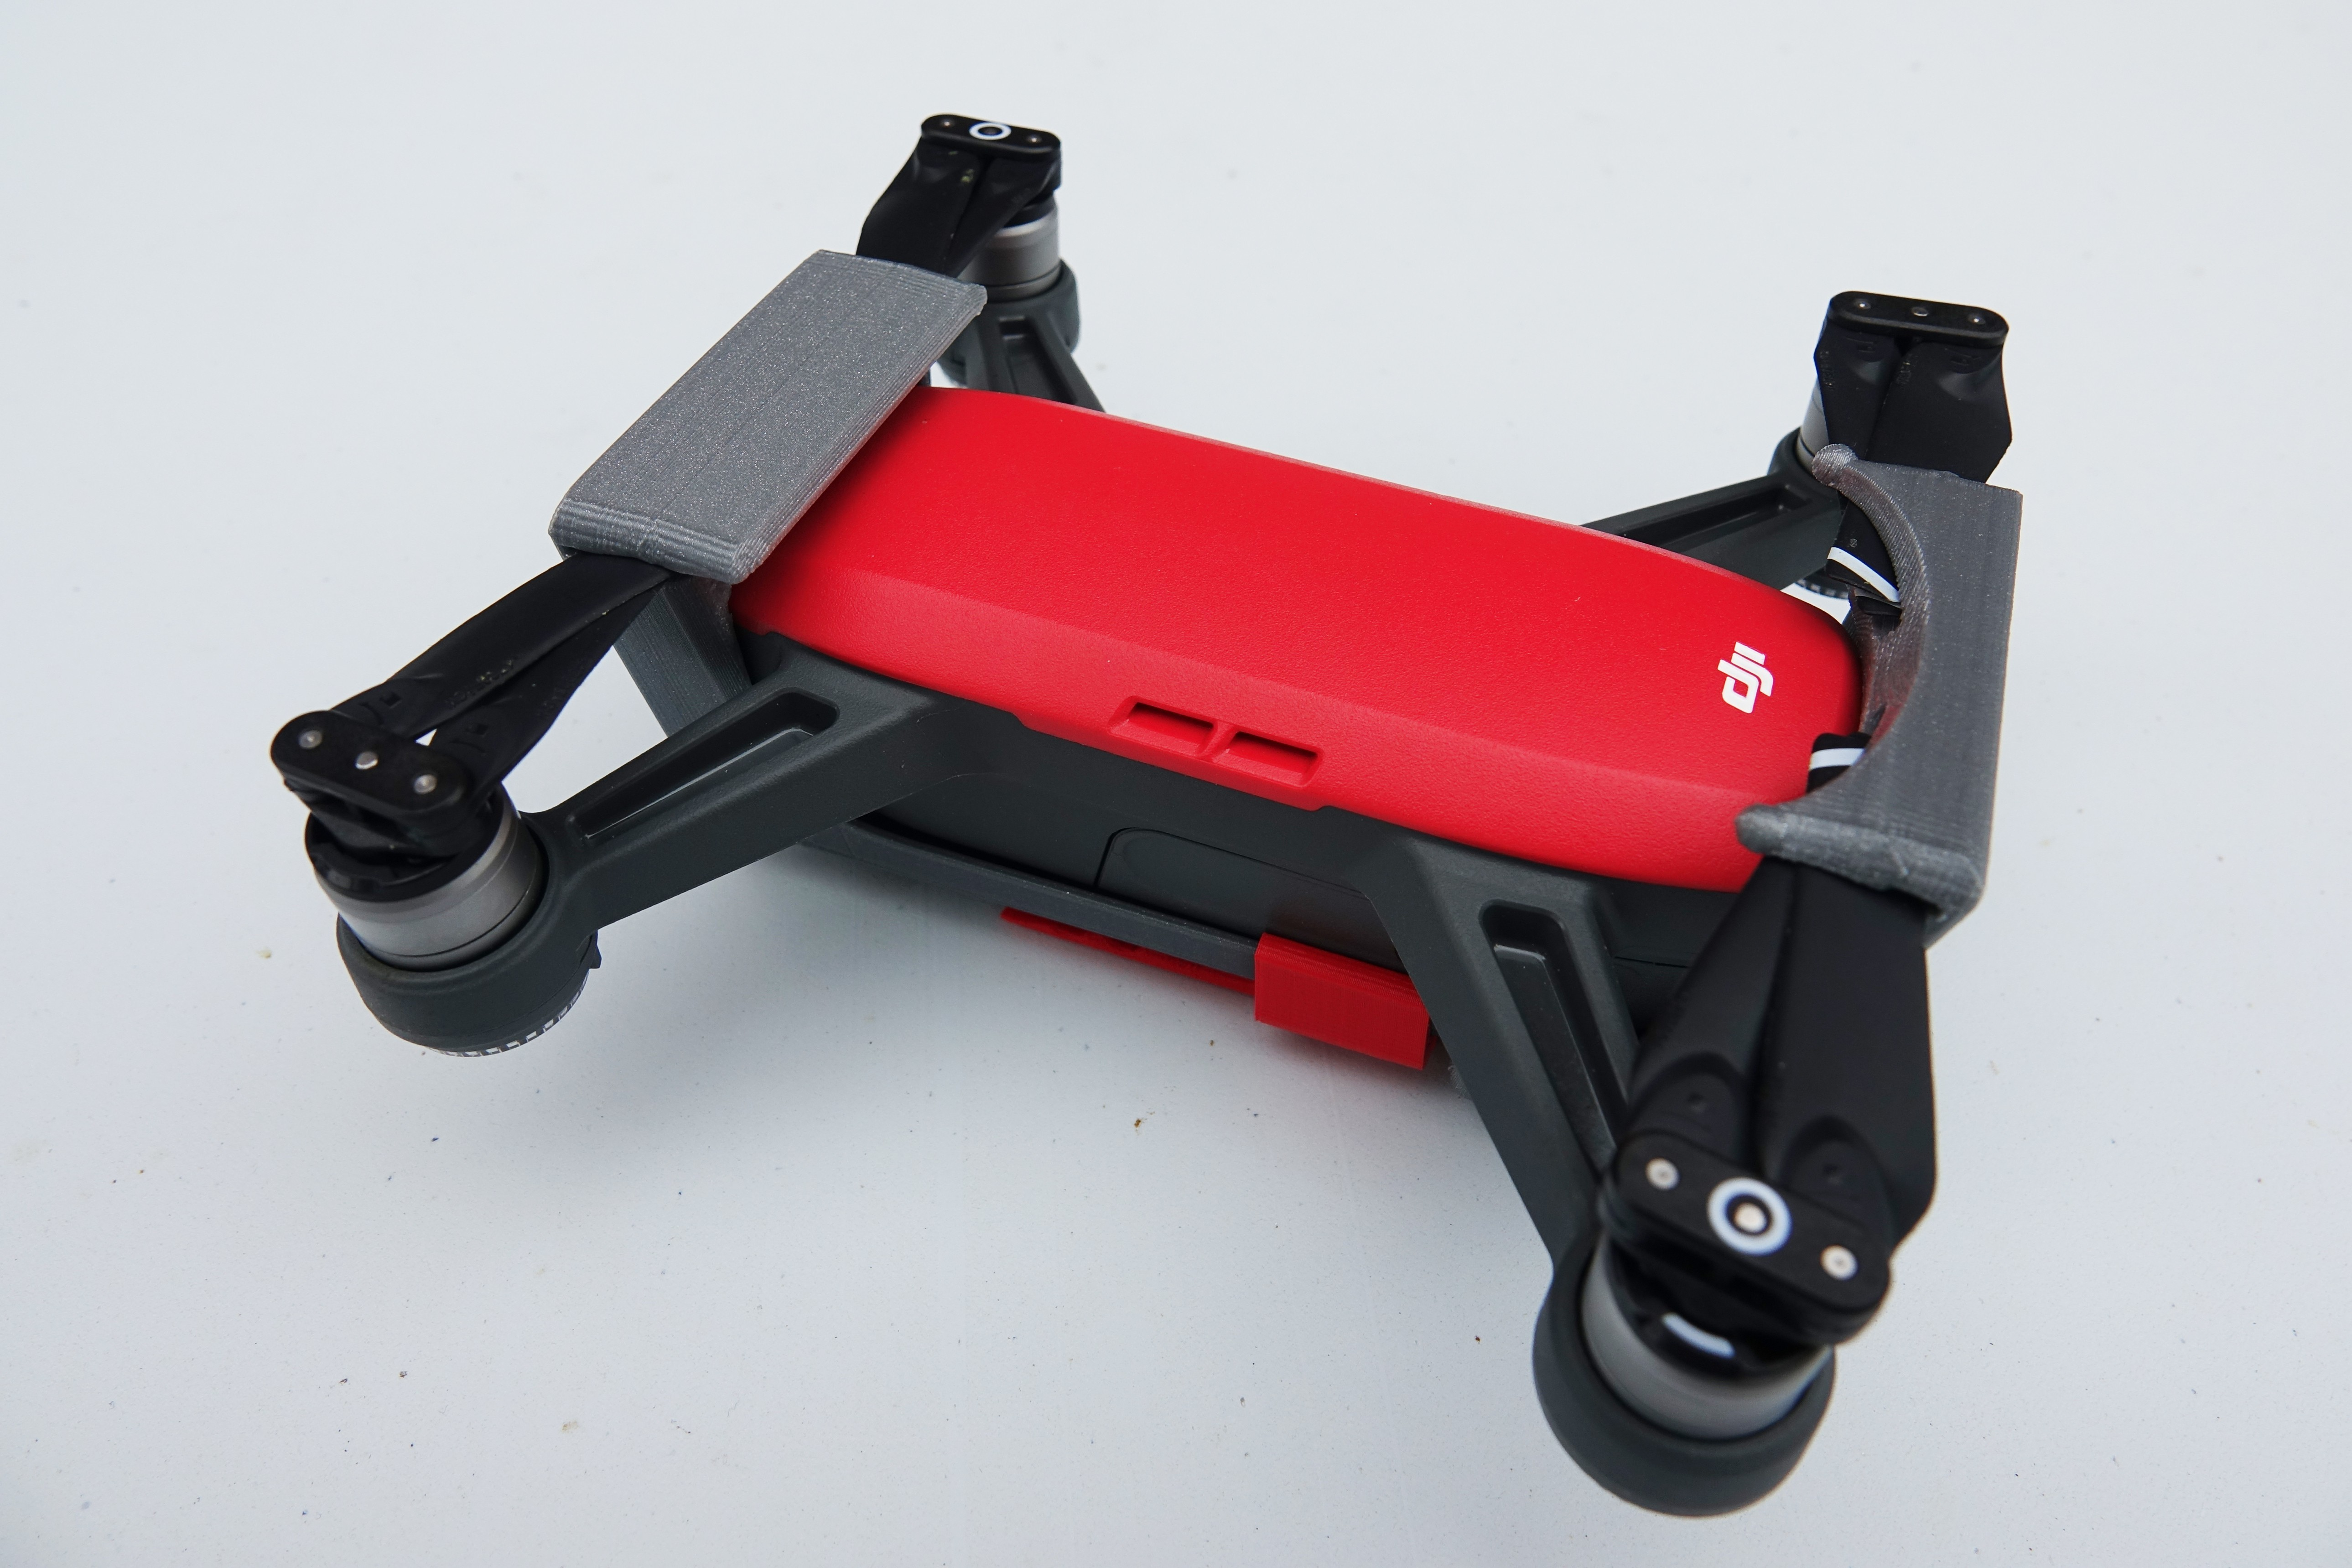 DSC01265.JPG Download free STL file Protection for DJI Spark • Template to 3D print, Luckyco